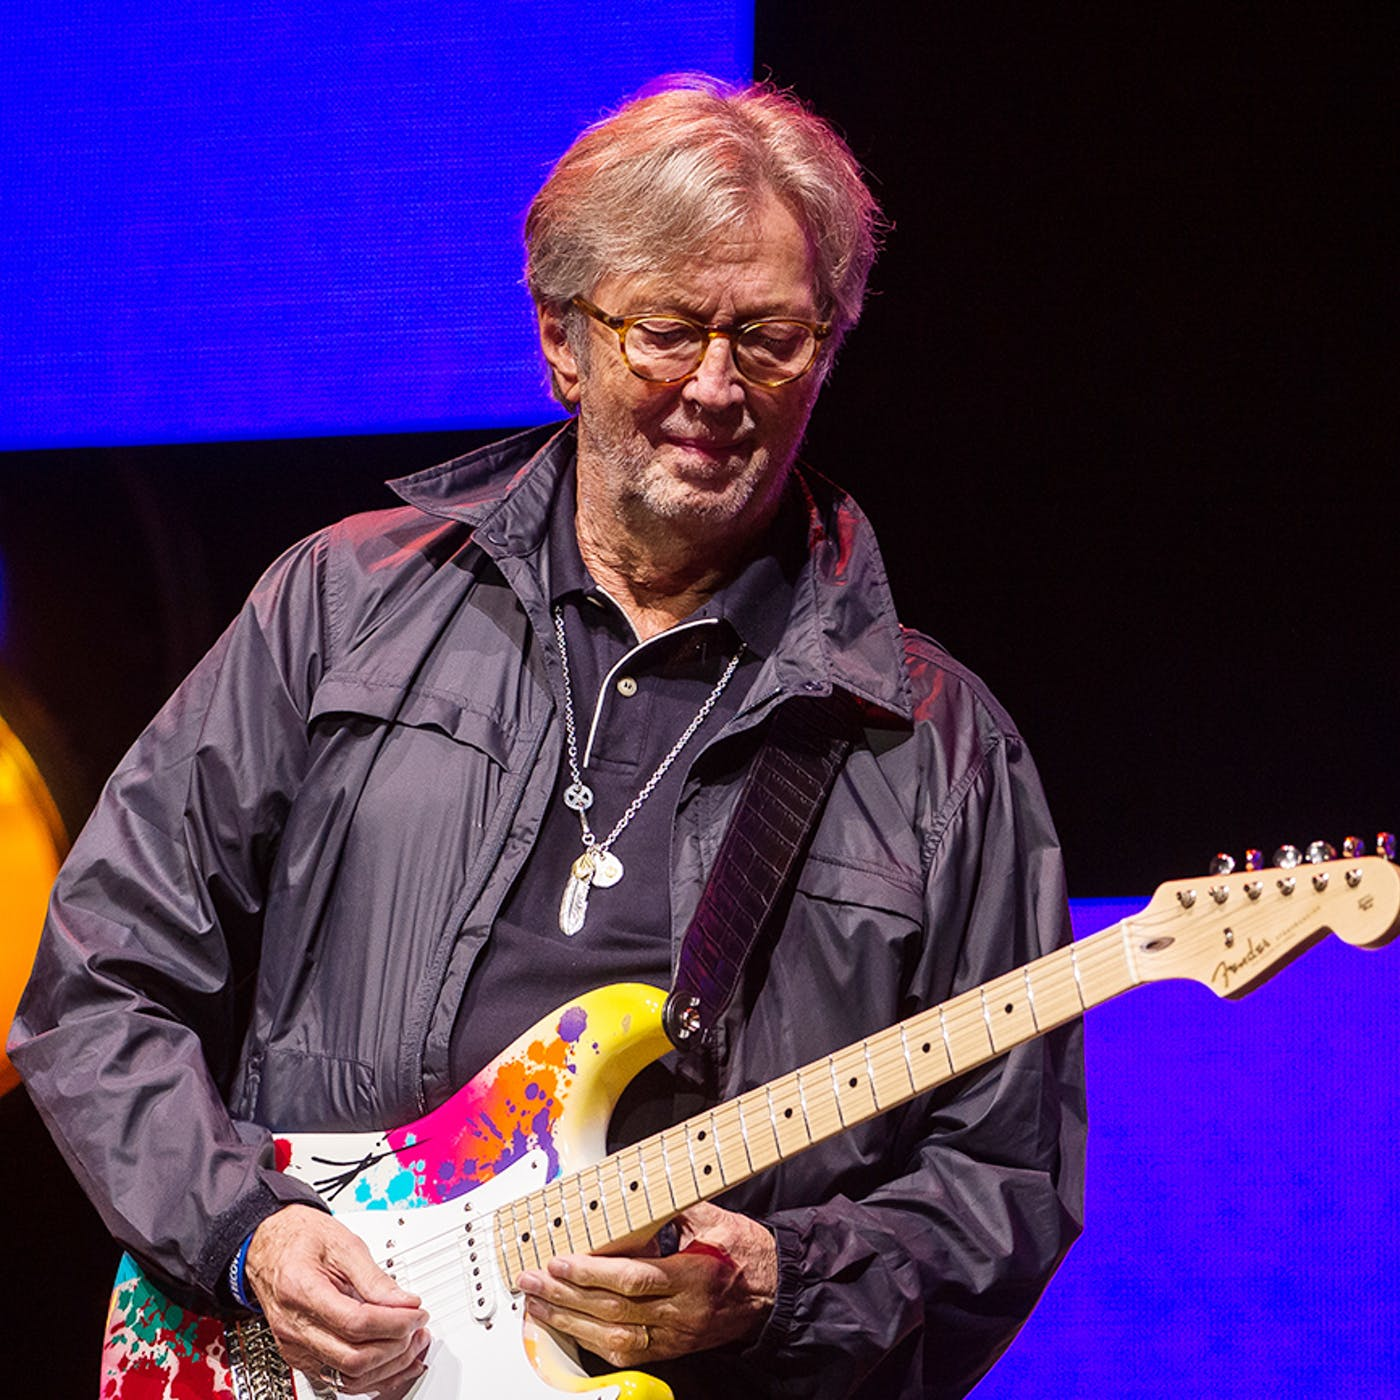 Eric Clapton Makes Dallas The Center Of The Guitar Universe Once More Texas Monthly